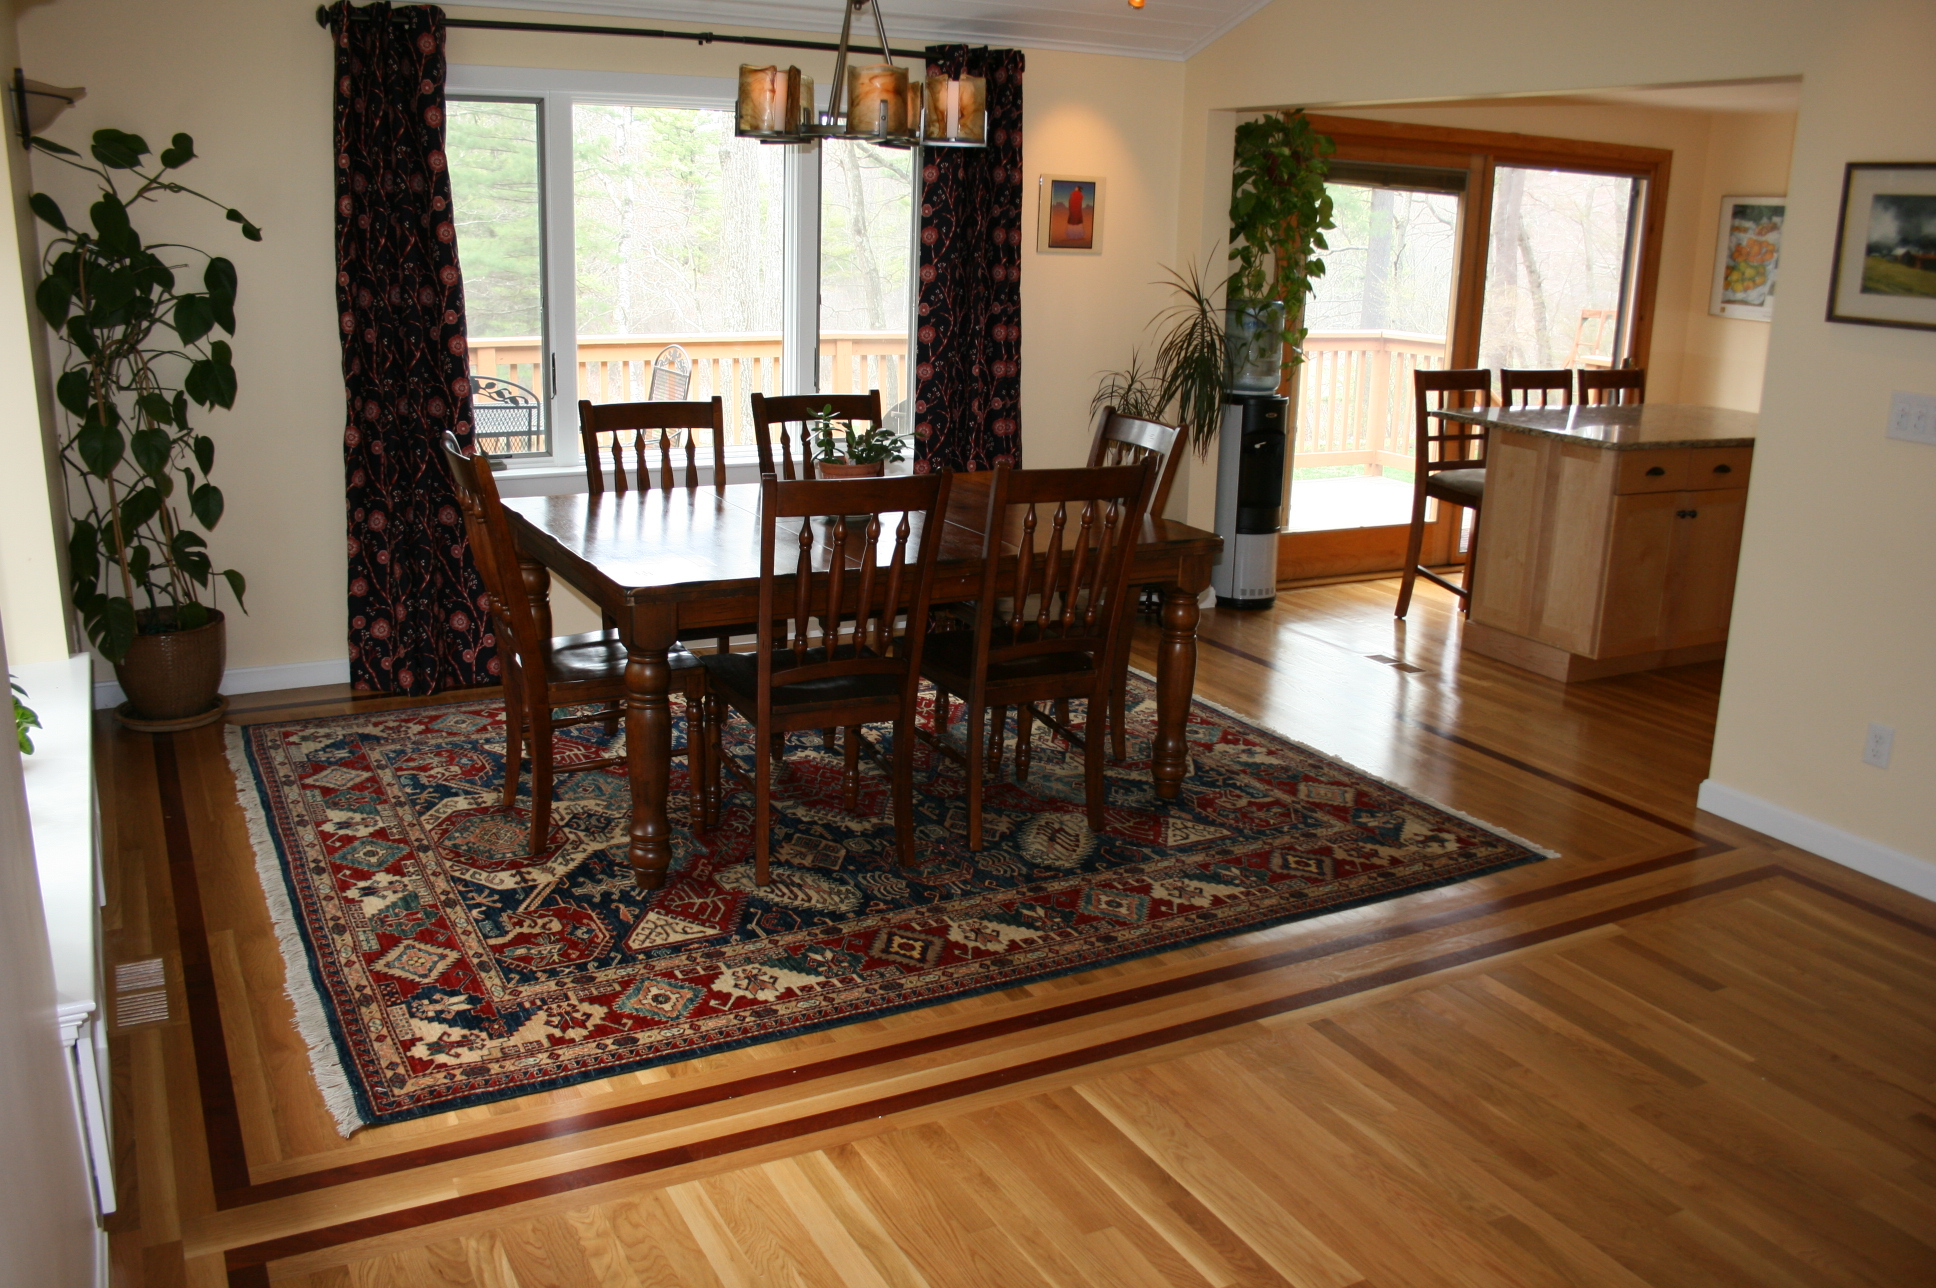 Wood Flooring Borders Divide Living Space